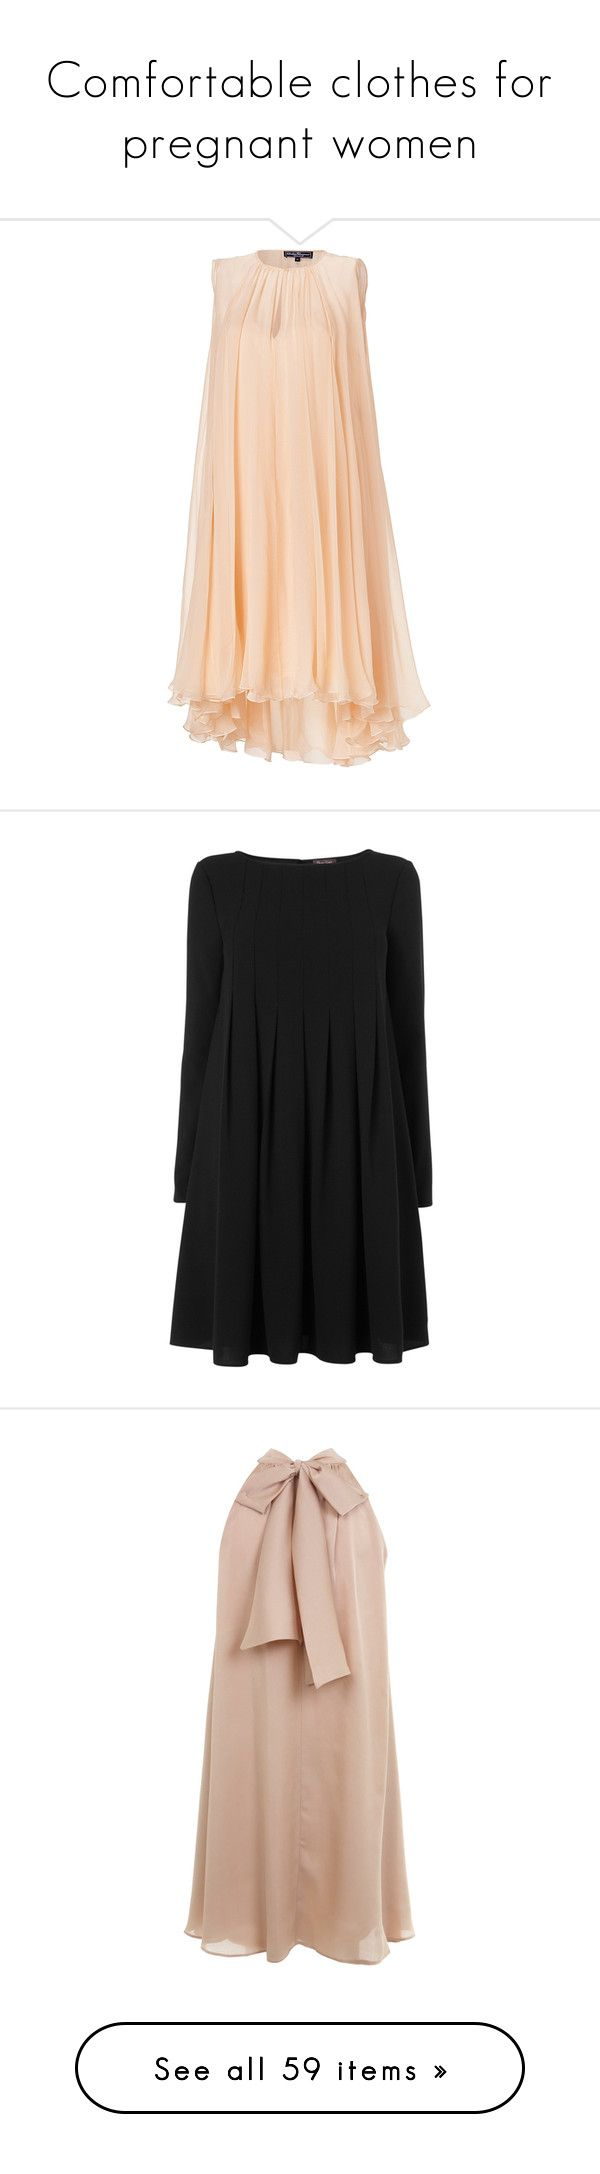 """""""Comfortable clothes for pregnant women"""" by adore-fashionn ❤ liked on Polyvore featuring dresses, vestidos, robe, red holiday dress, cocktail dresses, sleeveless cocktail dress, sheer cocktail dress, red dress, robes and pleated sleeve dress"""